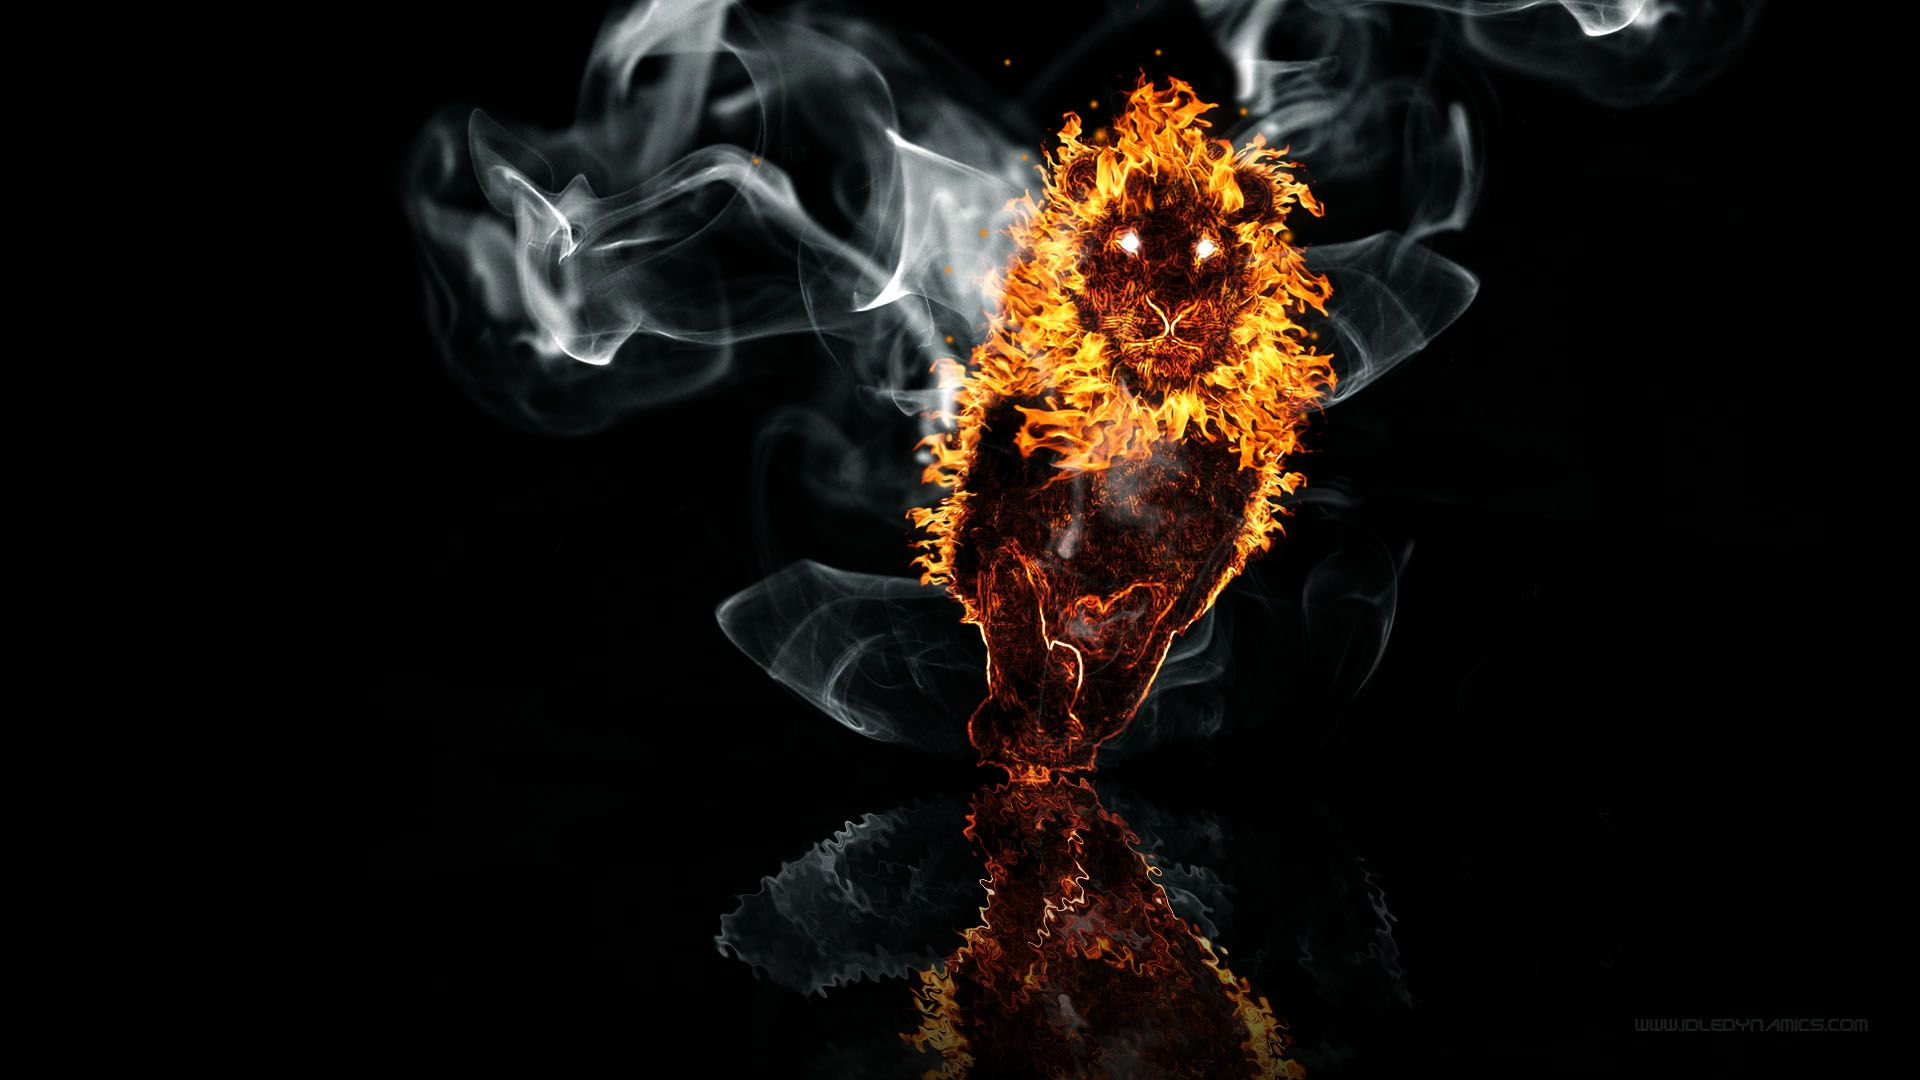 1 Lion Fire On The Water HD Wallpapers | Backgrounds - Wallpaper Abyss